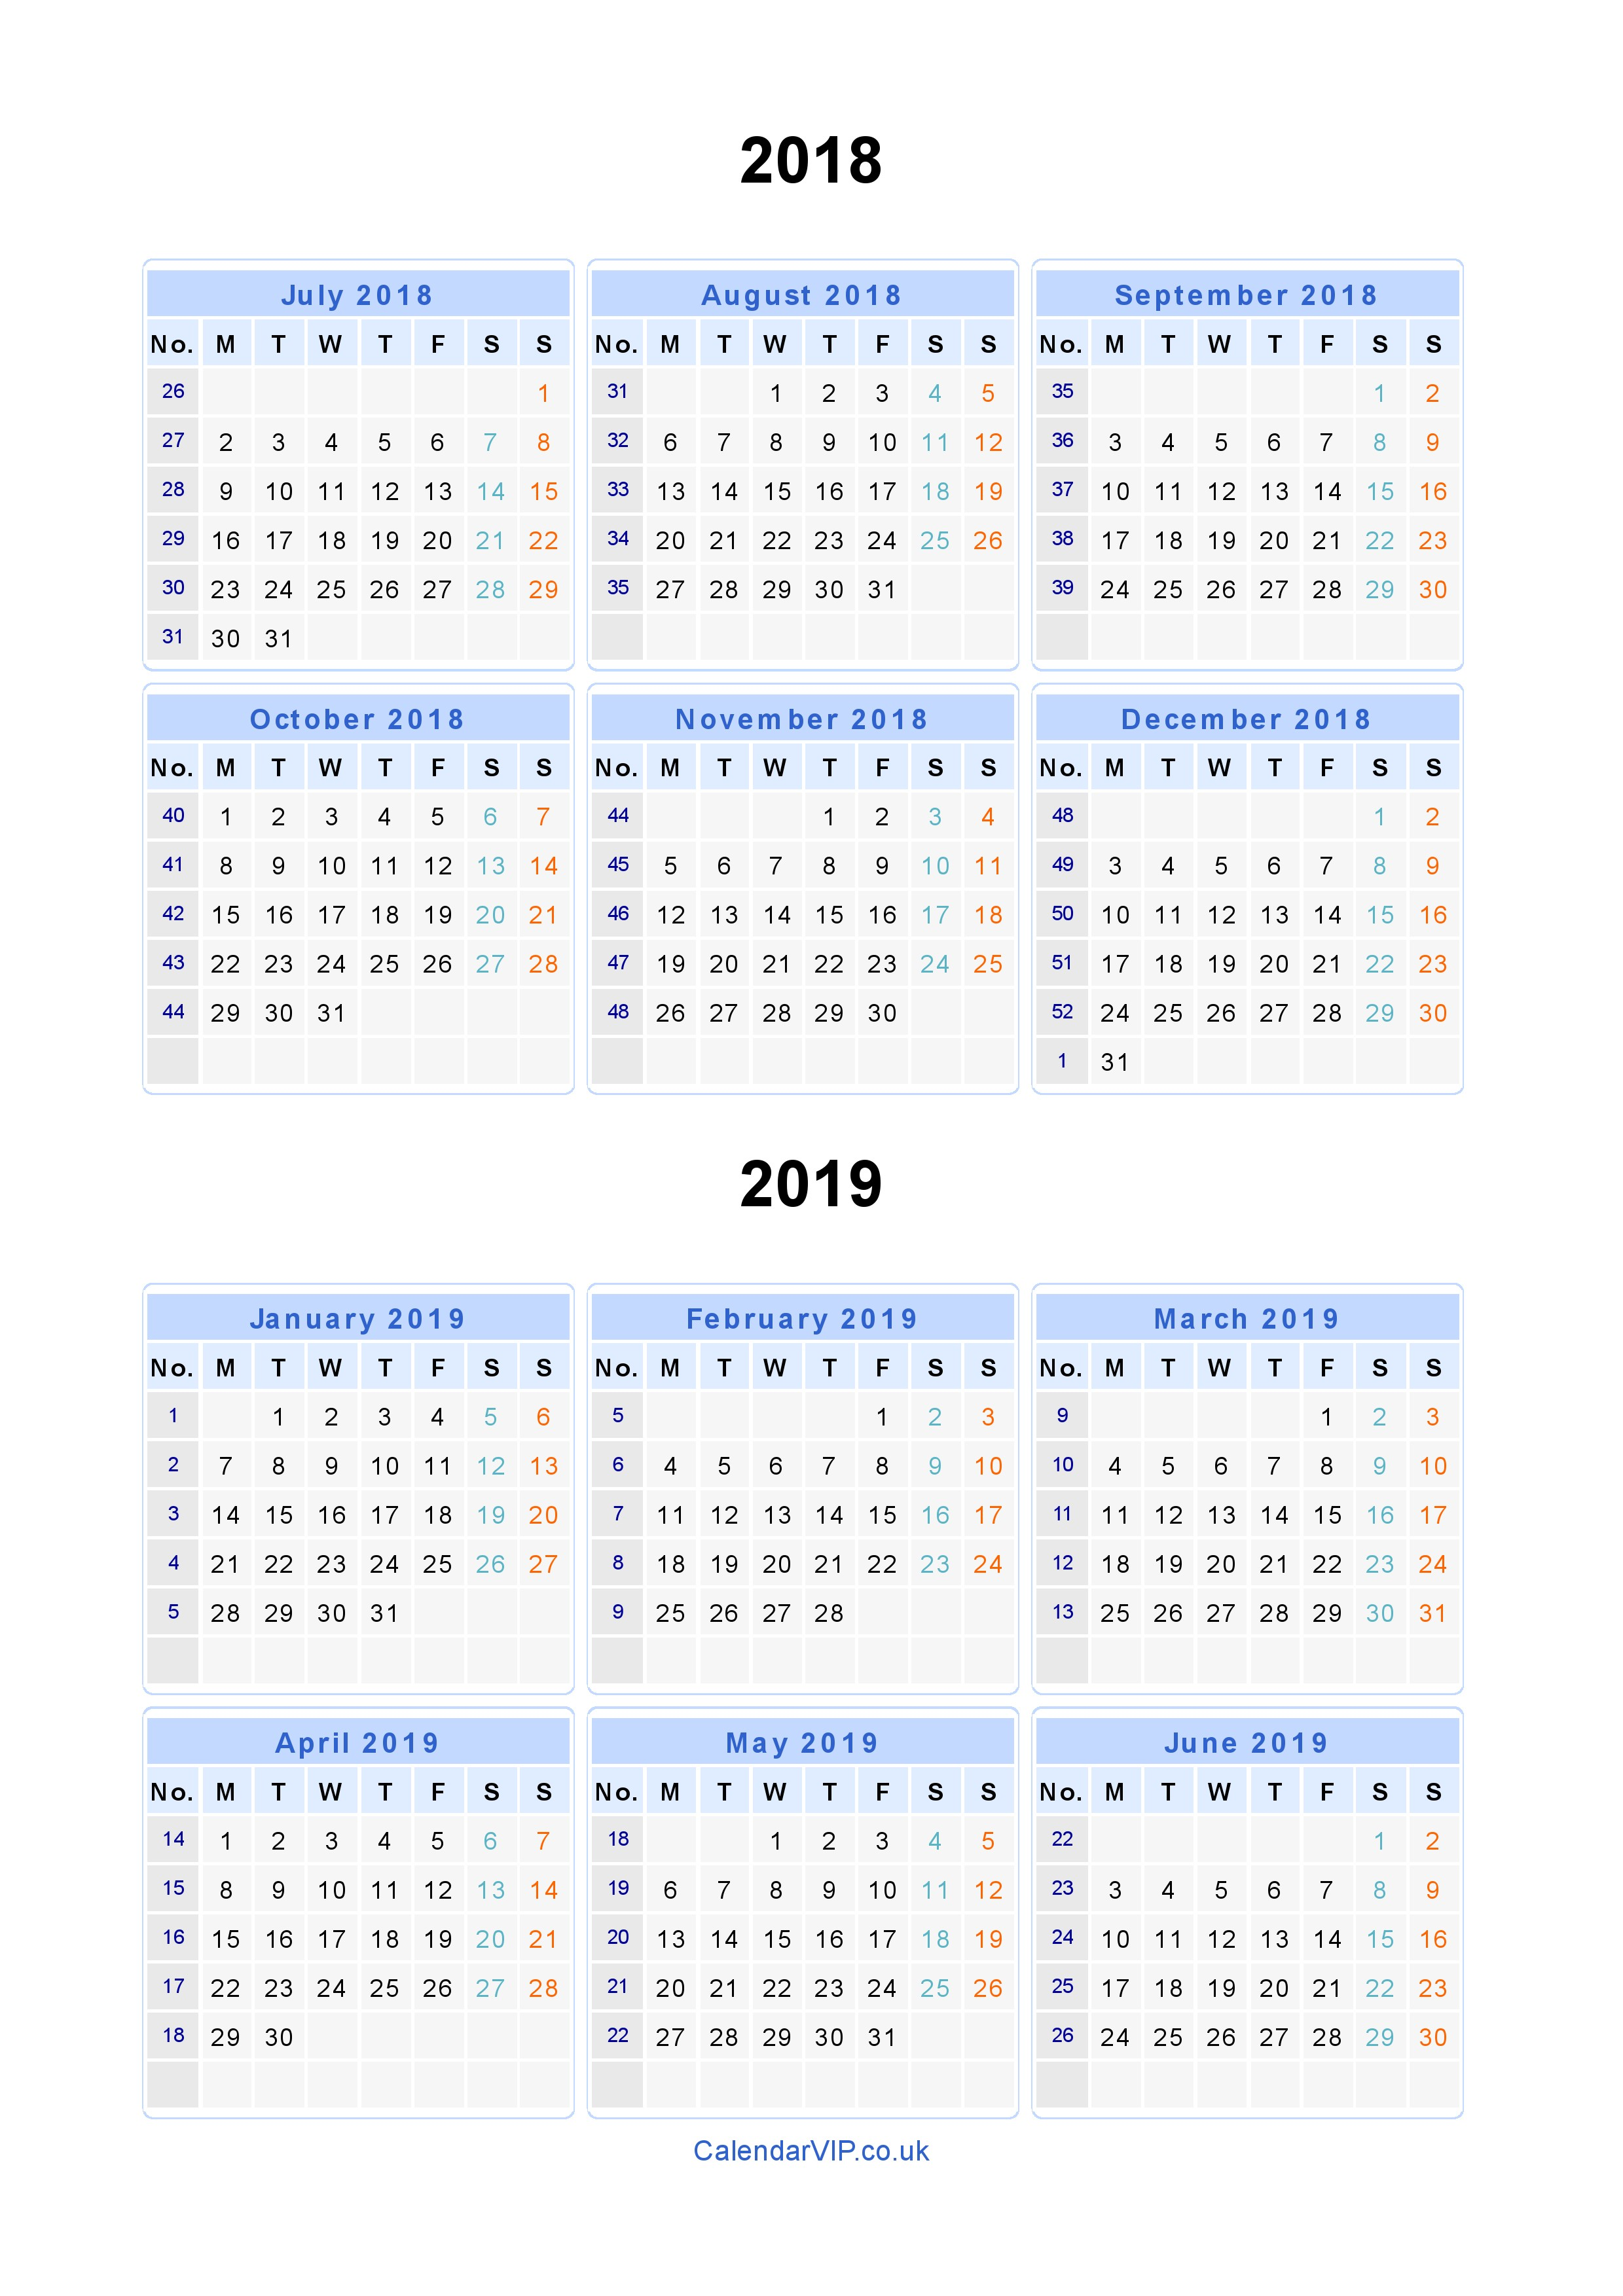 Fiscal Year 2019 Calendar Printable With Split Calendars 2018 From July To June